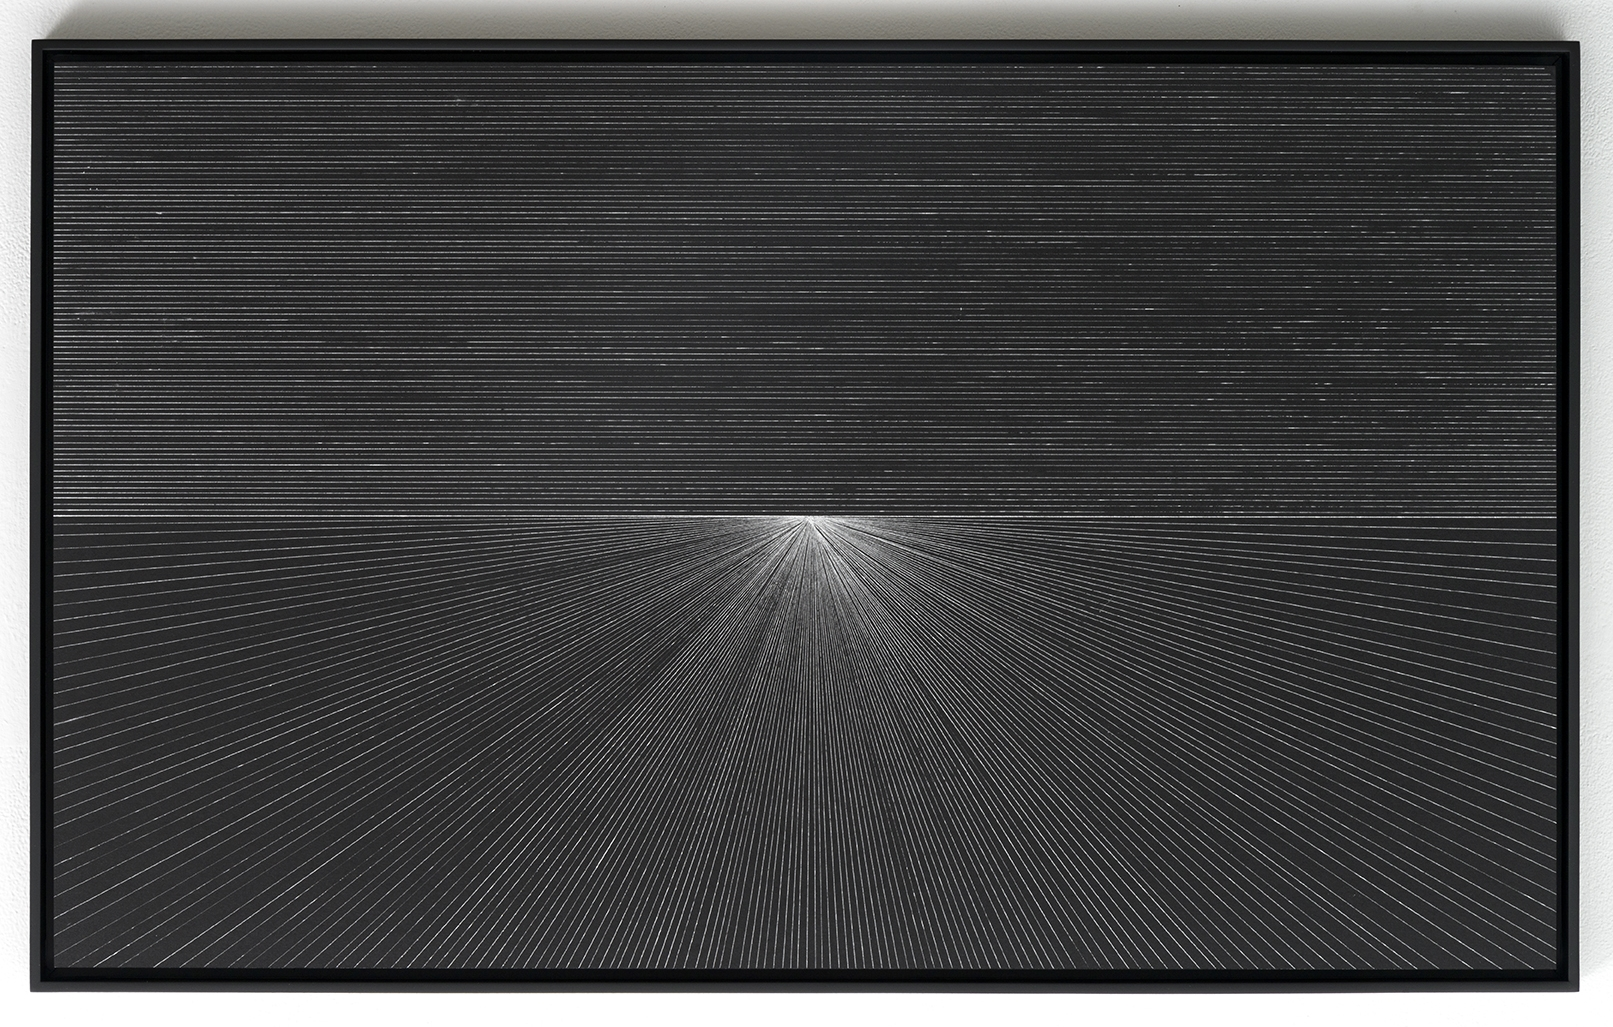 Jason Peters    Untitled 2   , 2014   Silver ink on black construction paper   21.5 x 35 inches   Unique   Mounted to aluminum